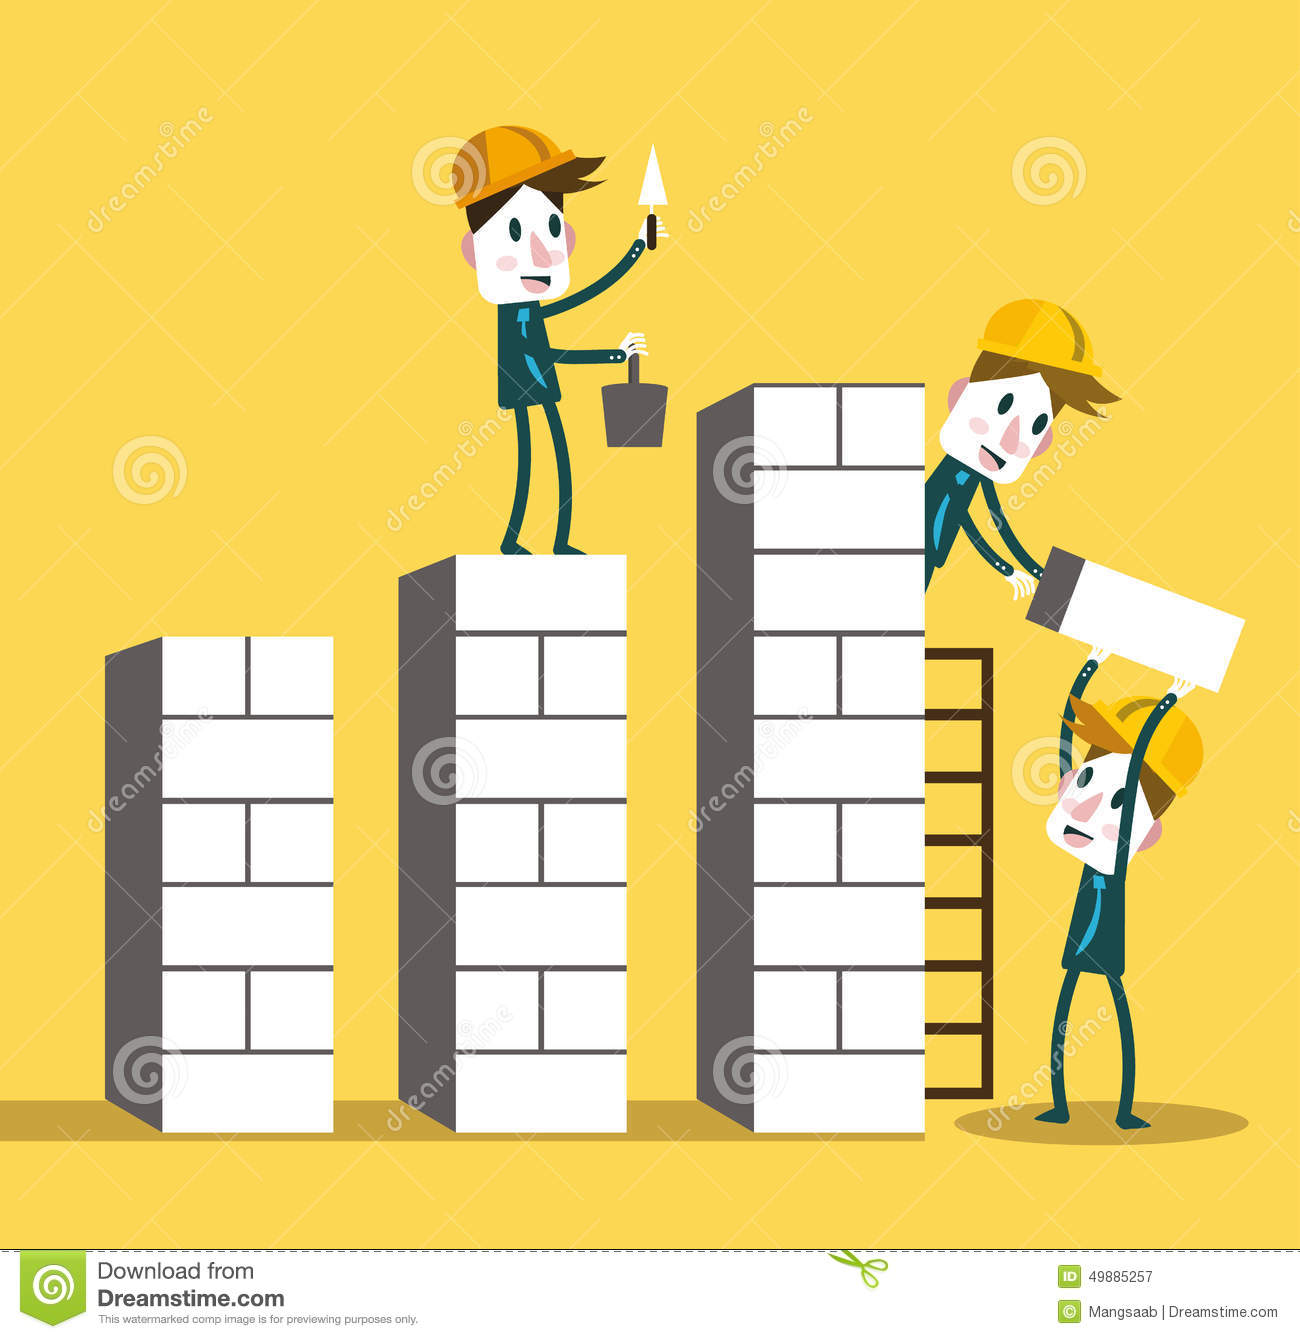 Business Team Building Higher Growth Graph Teamwork And Growth Business Concept Stock Photo